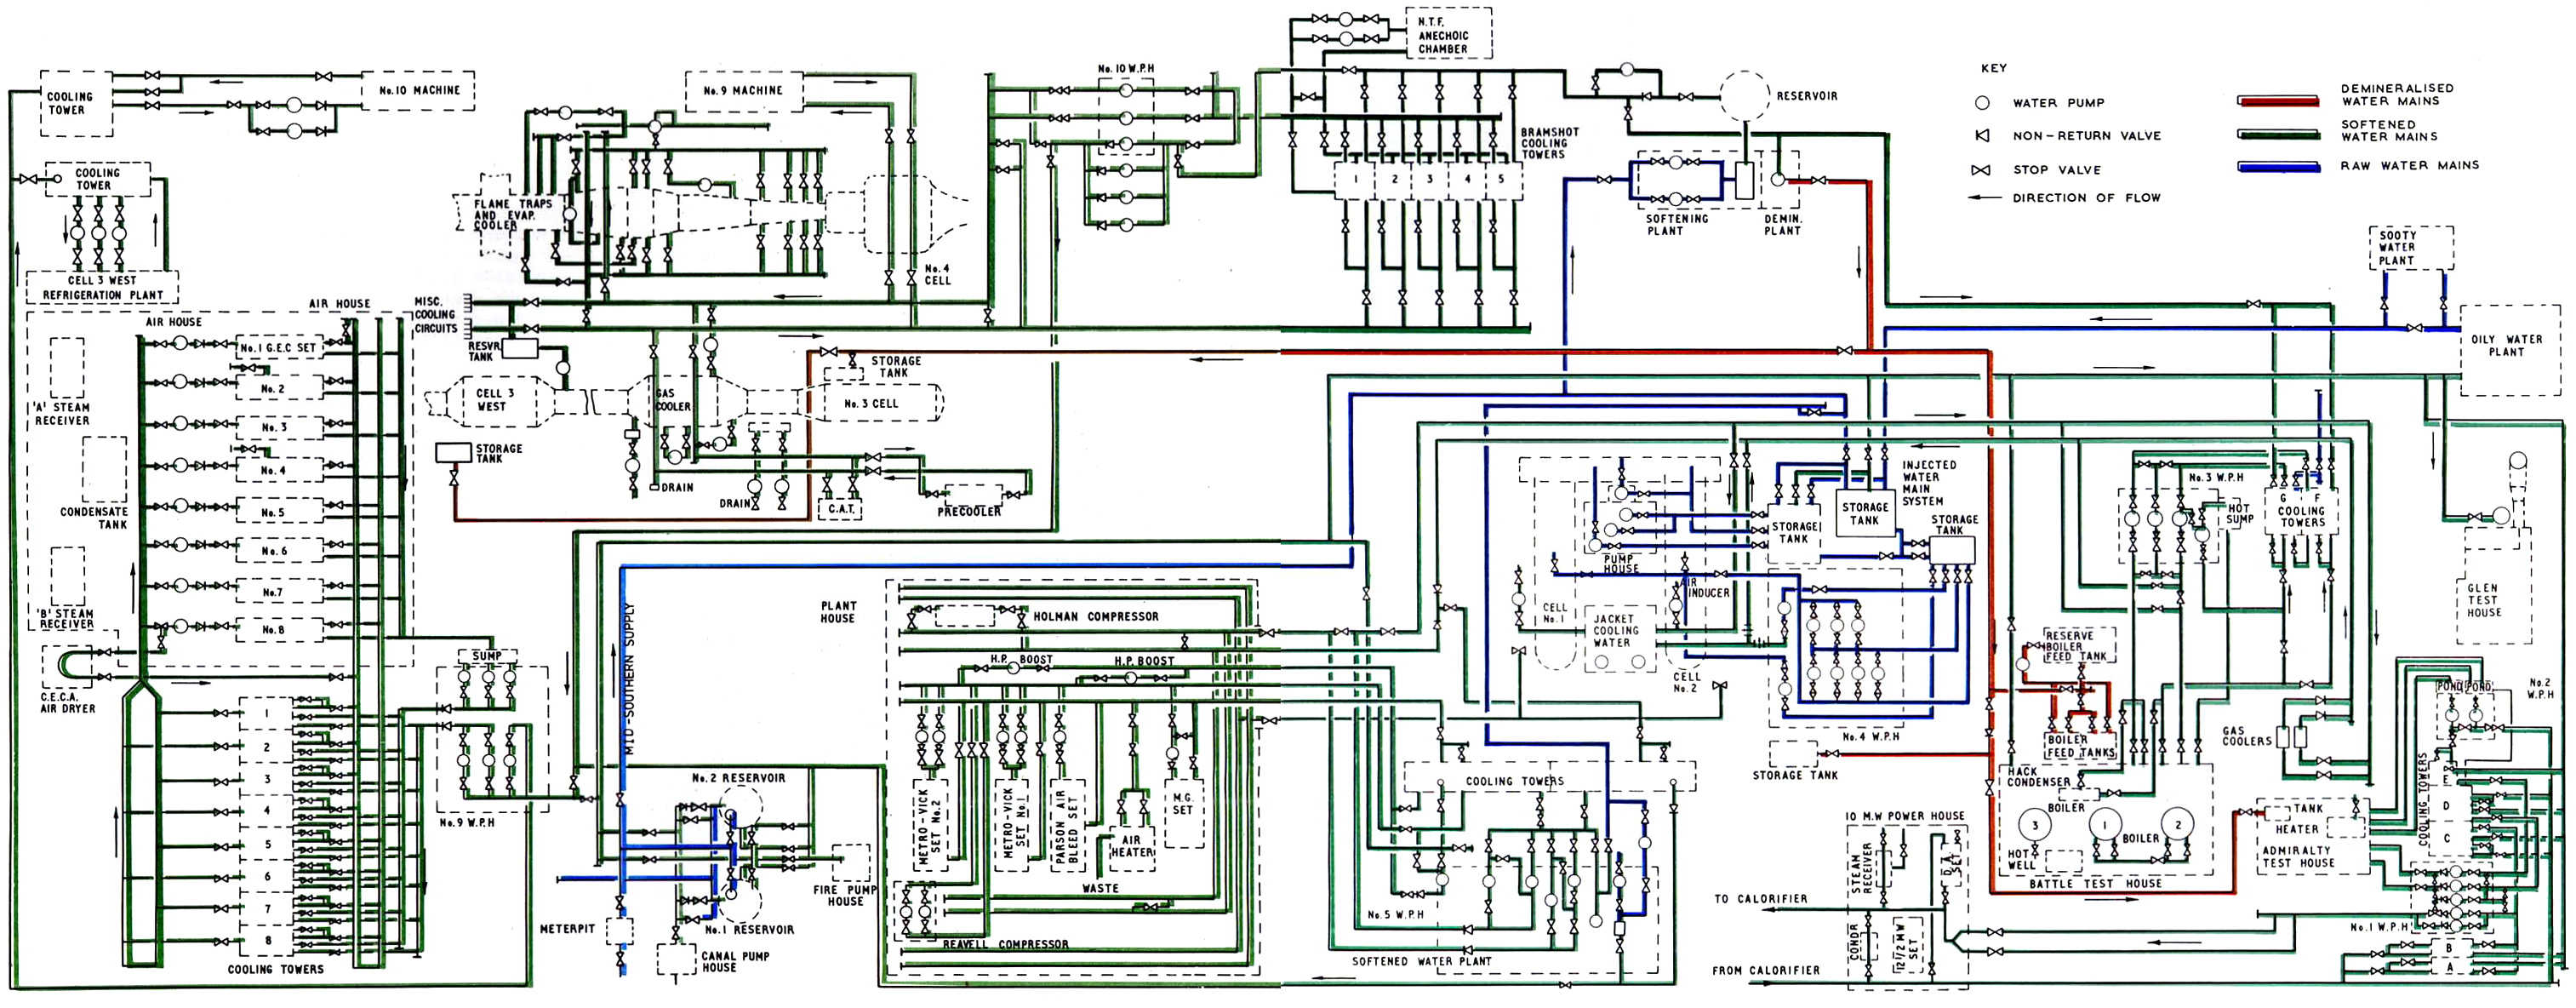 Pyestock Diagram Of Power Plant Higher Resolution